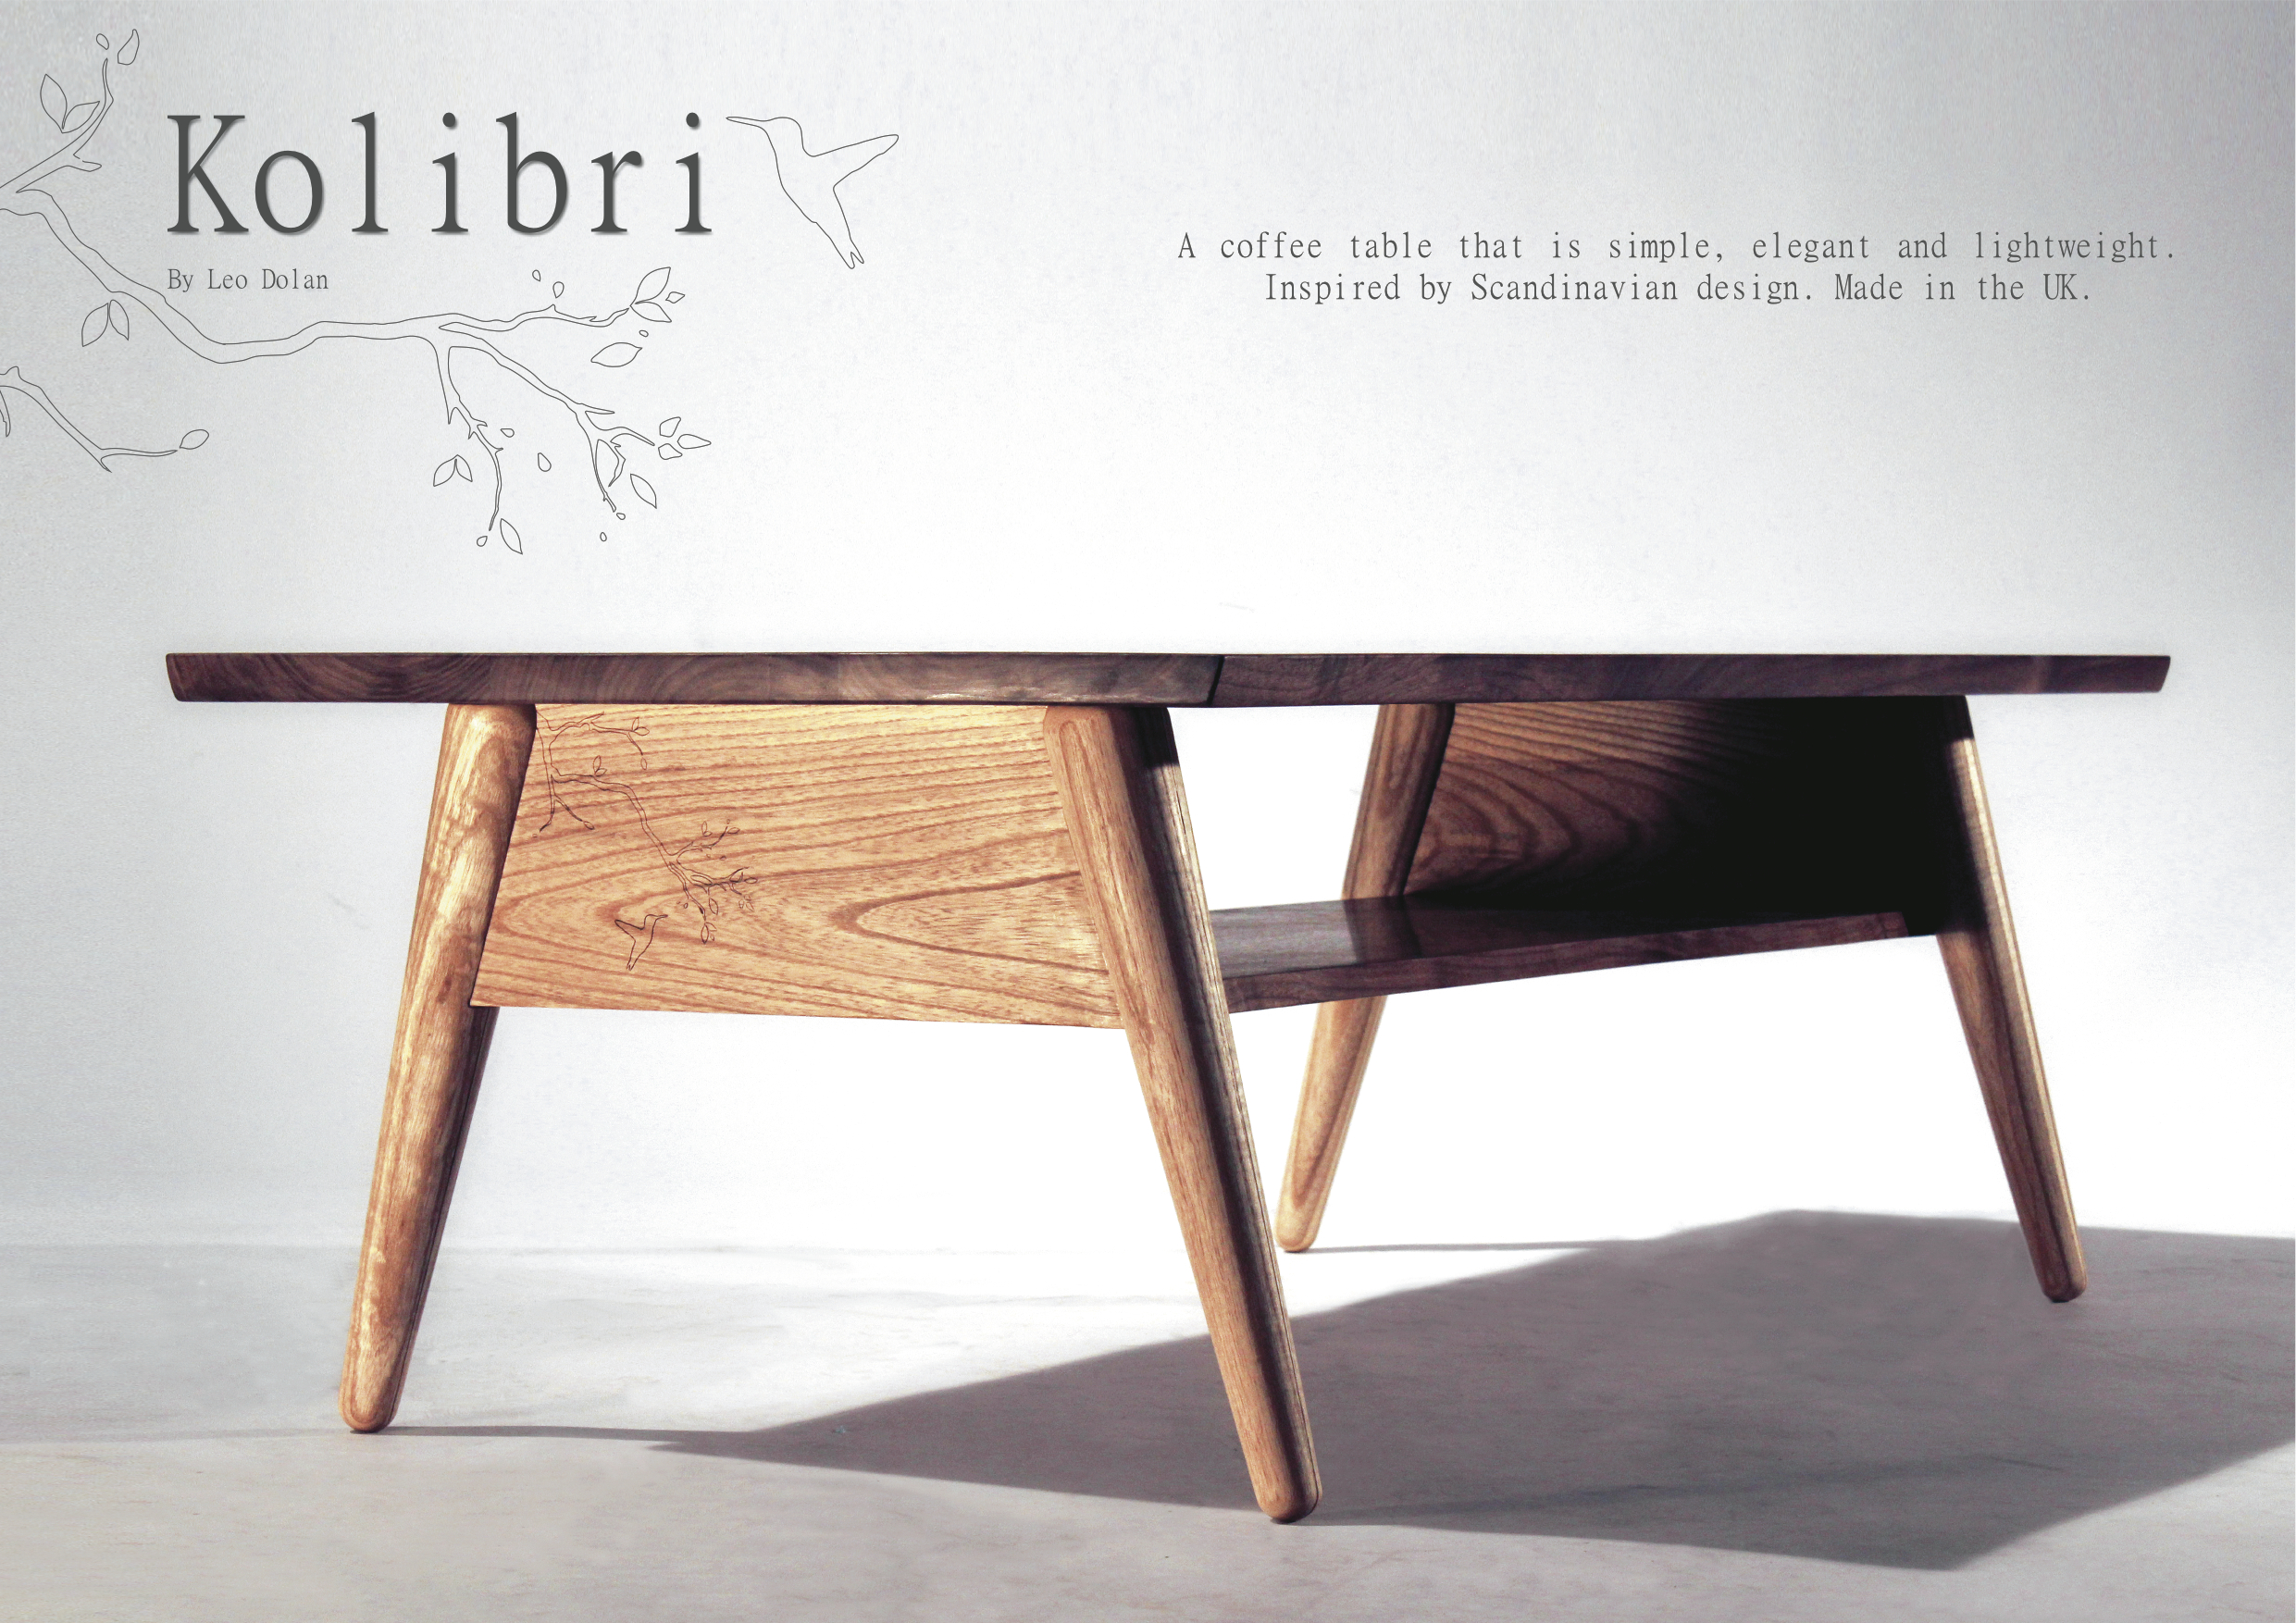 Furniture design leo dolan - Danish furniture designers ...